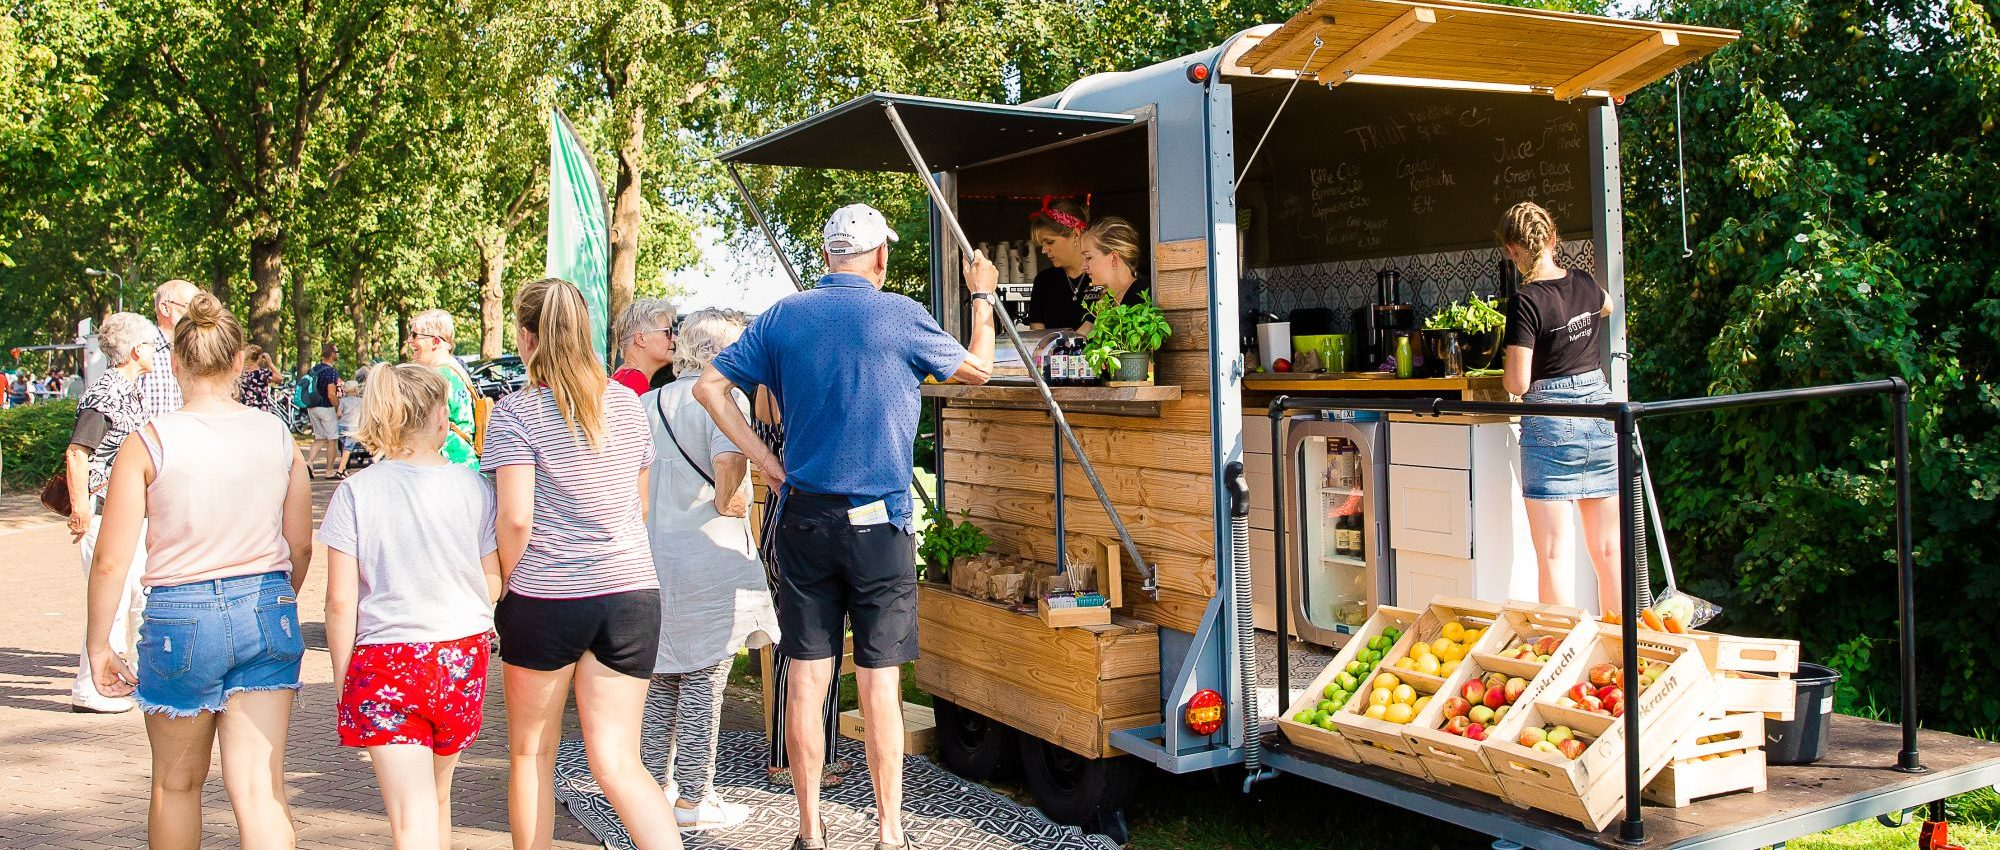 foodtruck friesland